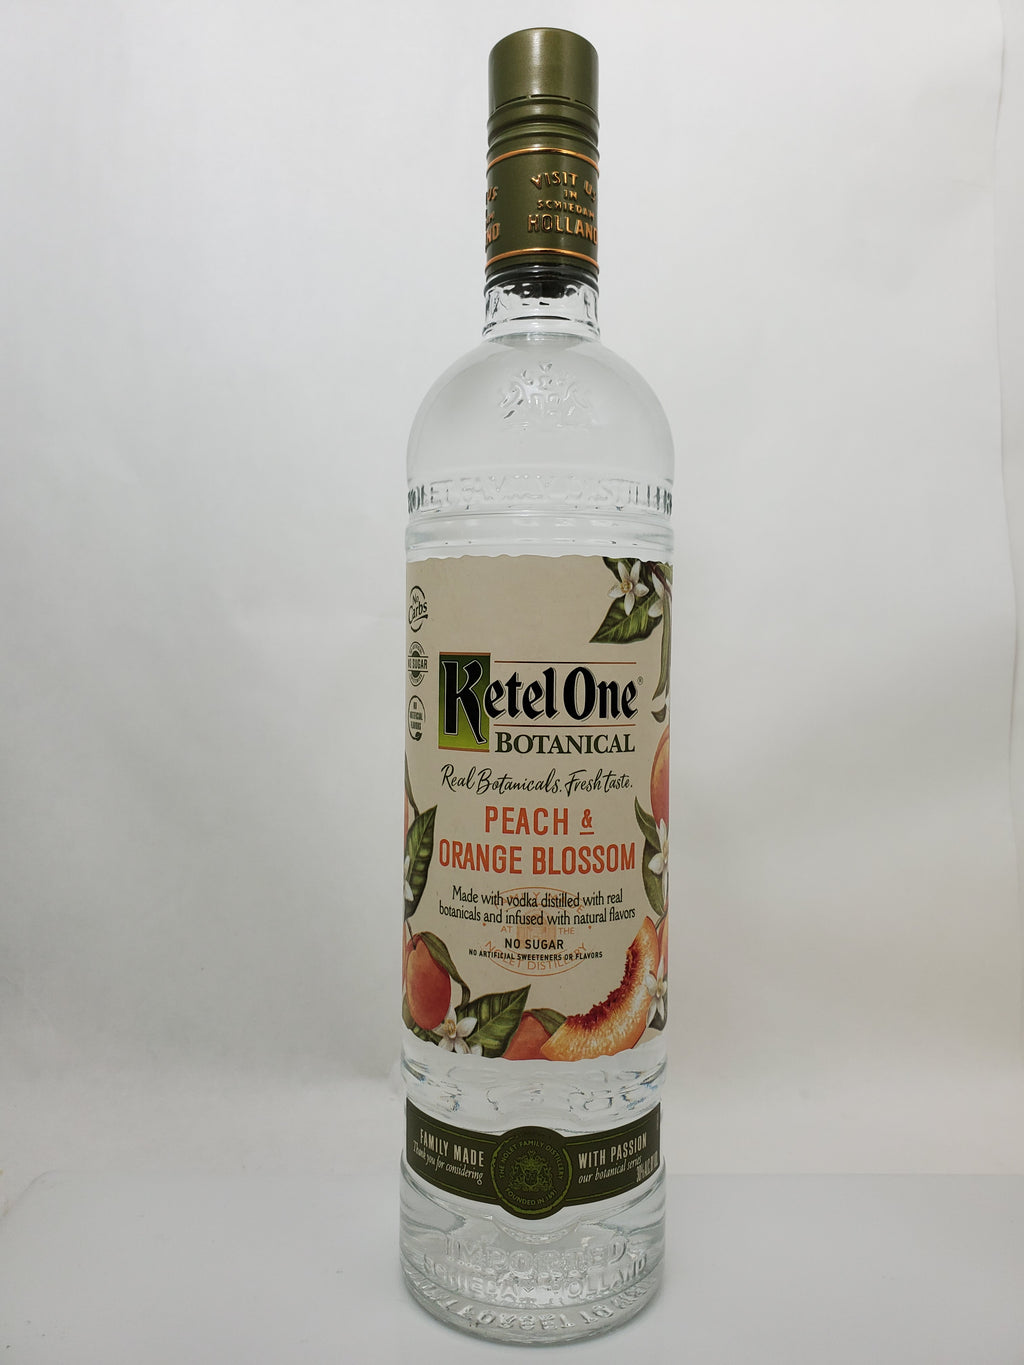 Ketel One Botanical Peach & Orange Blossom Vodka 750 ml